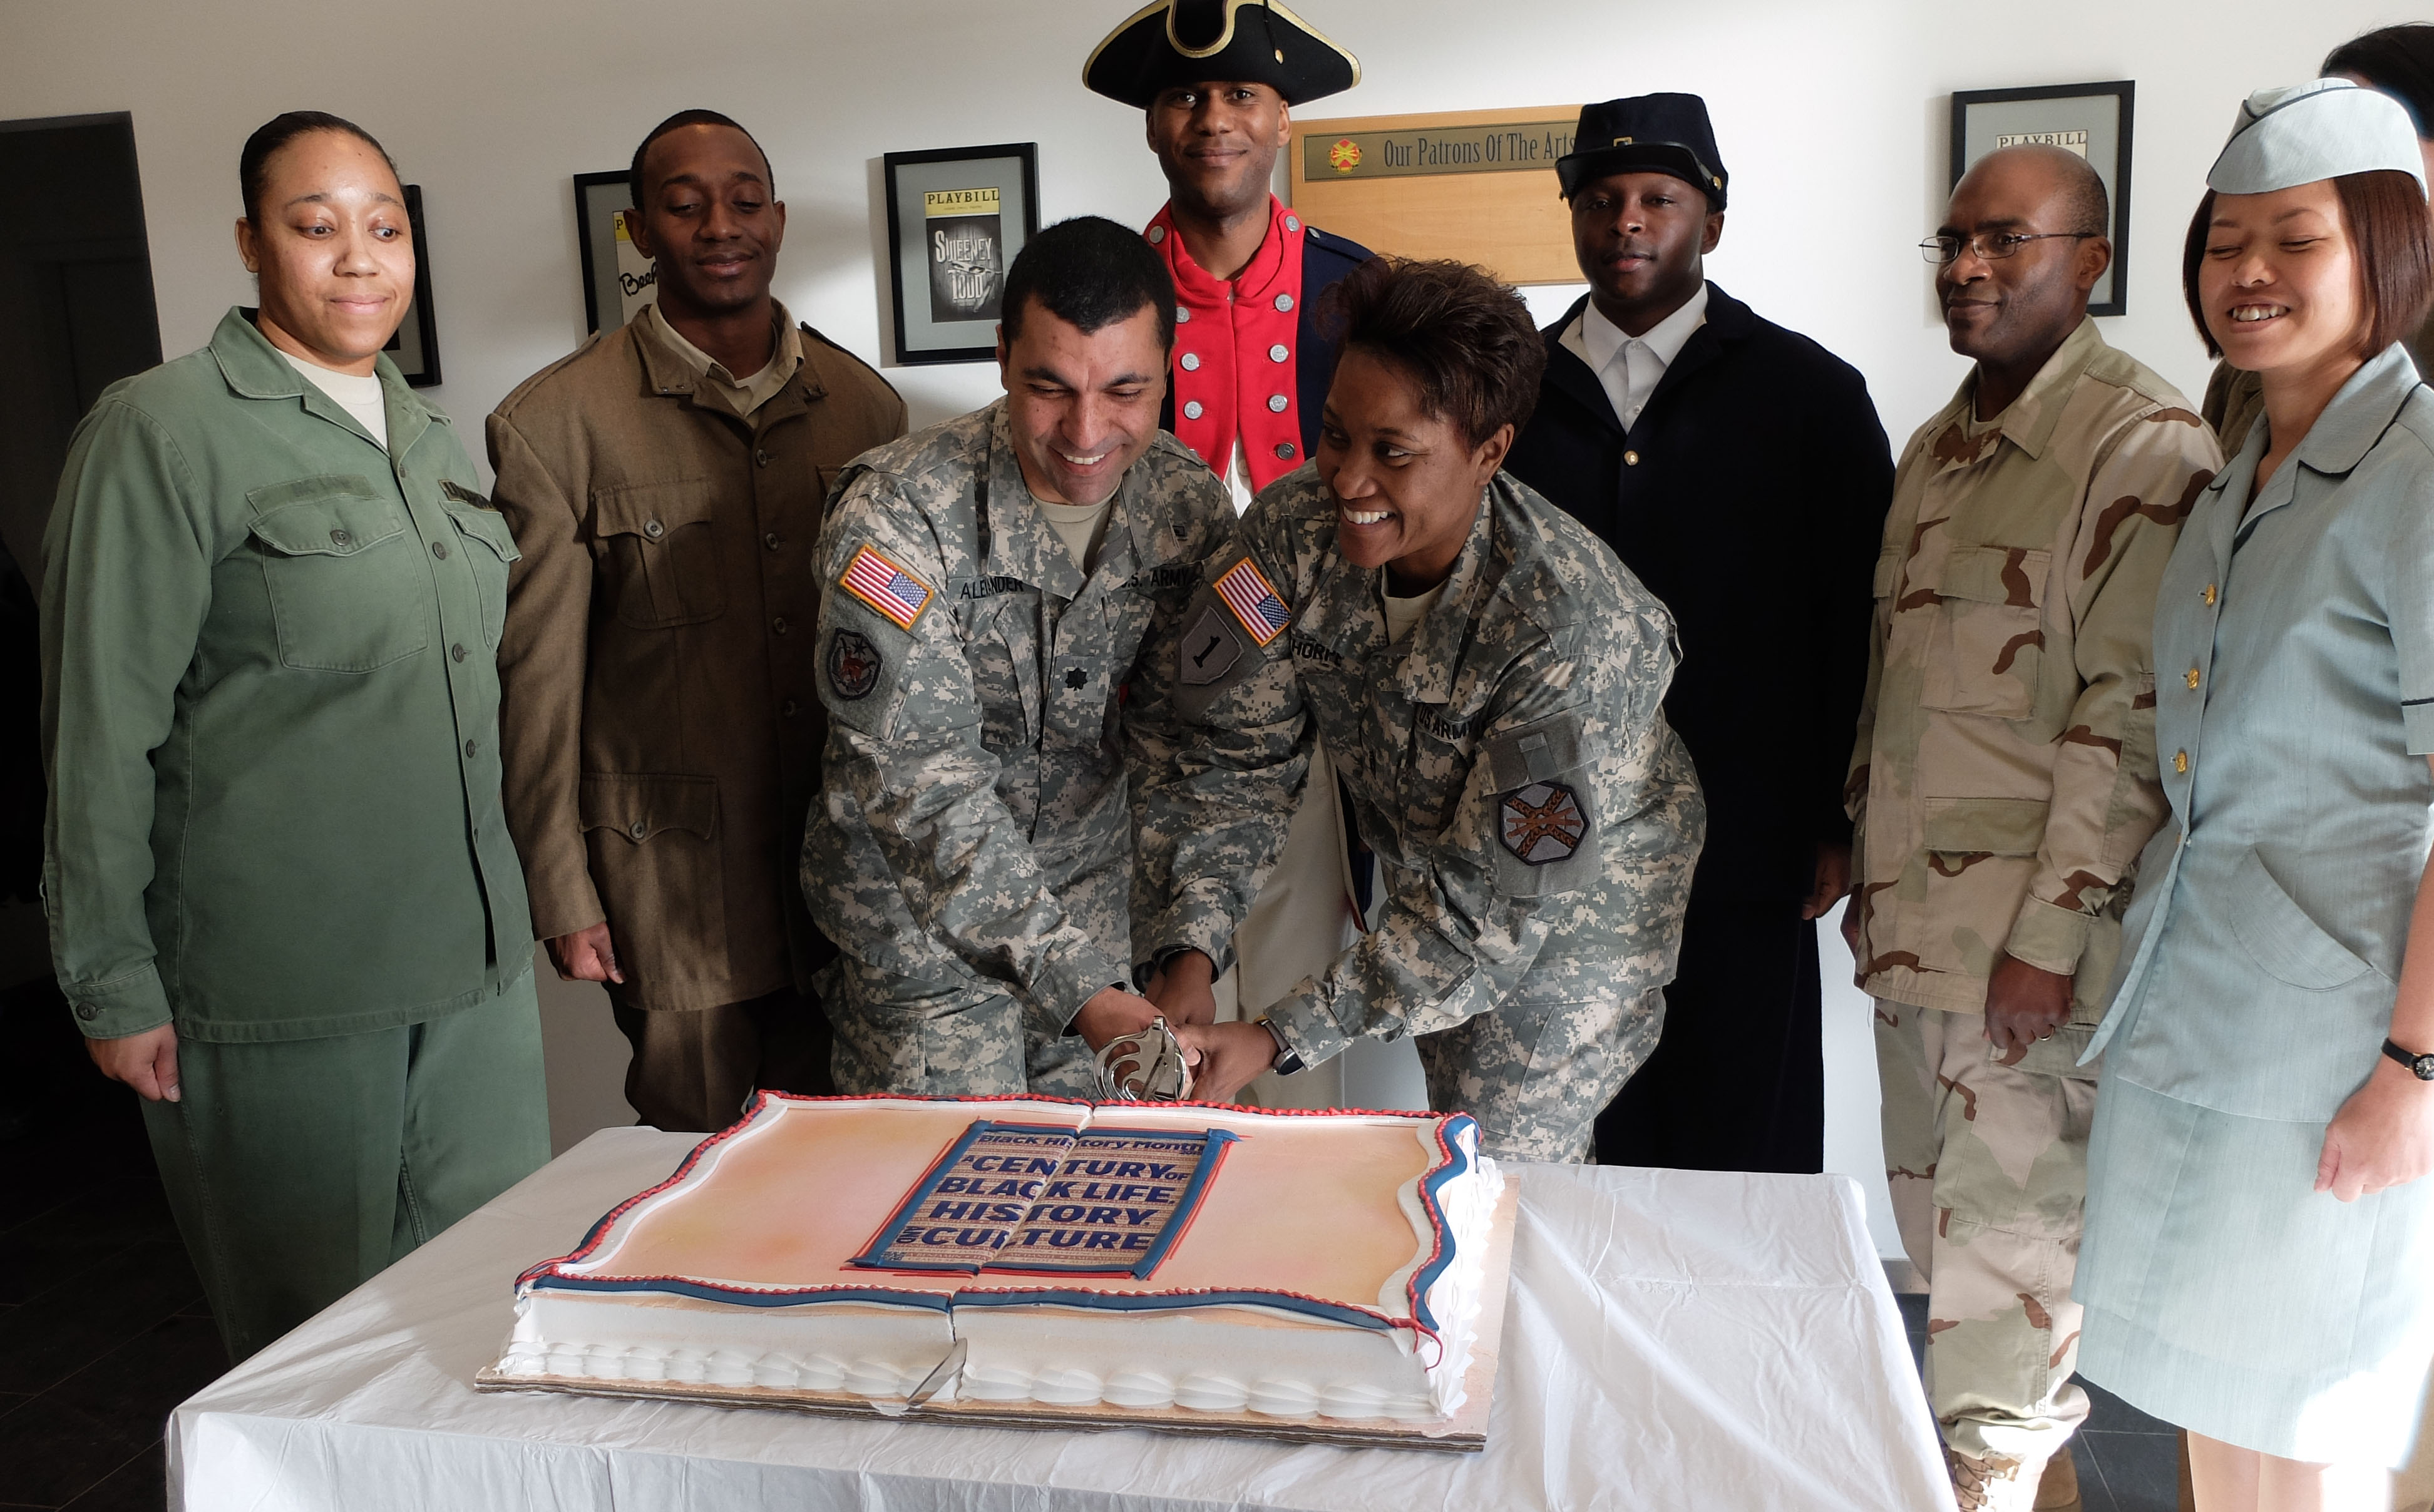 "U.S. Army Garrison Command Sgt. Major Lynice Thorpe (right) and AFRICOM Headquarters Commandant, U.S. Army Lt. Col. Troy Alexander, cut the cake. ""A Century of Black Life, History and Culture"" served as the theme for this year's Black History Month celebration, held at Kelley Barracks, U.S. Army Garrison Stuttgart, Feb. 26, 2015.  Performances by the Patch High School and Stuttgart Gospel Service Choirs and a dance from the play ""Her Stories"" highlighted the accomplishments of African Americans over the past century. (U.S. Africa Command photos by Brenda Law/Released)"